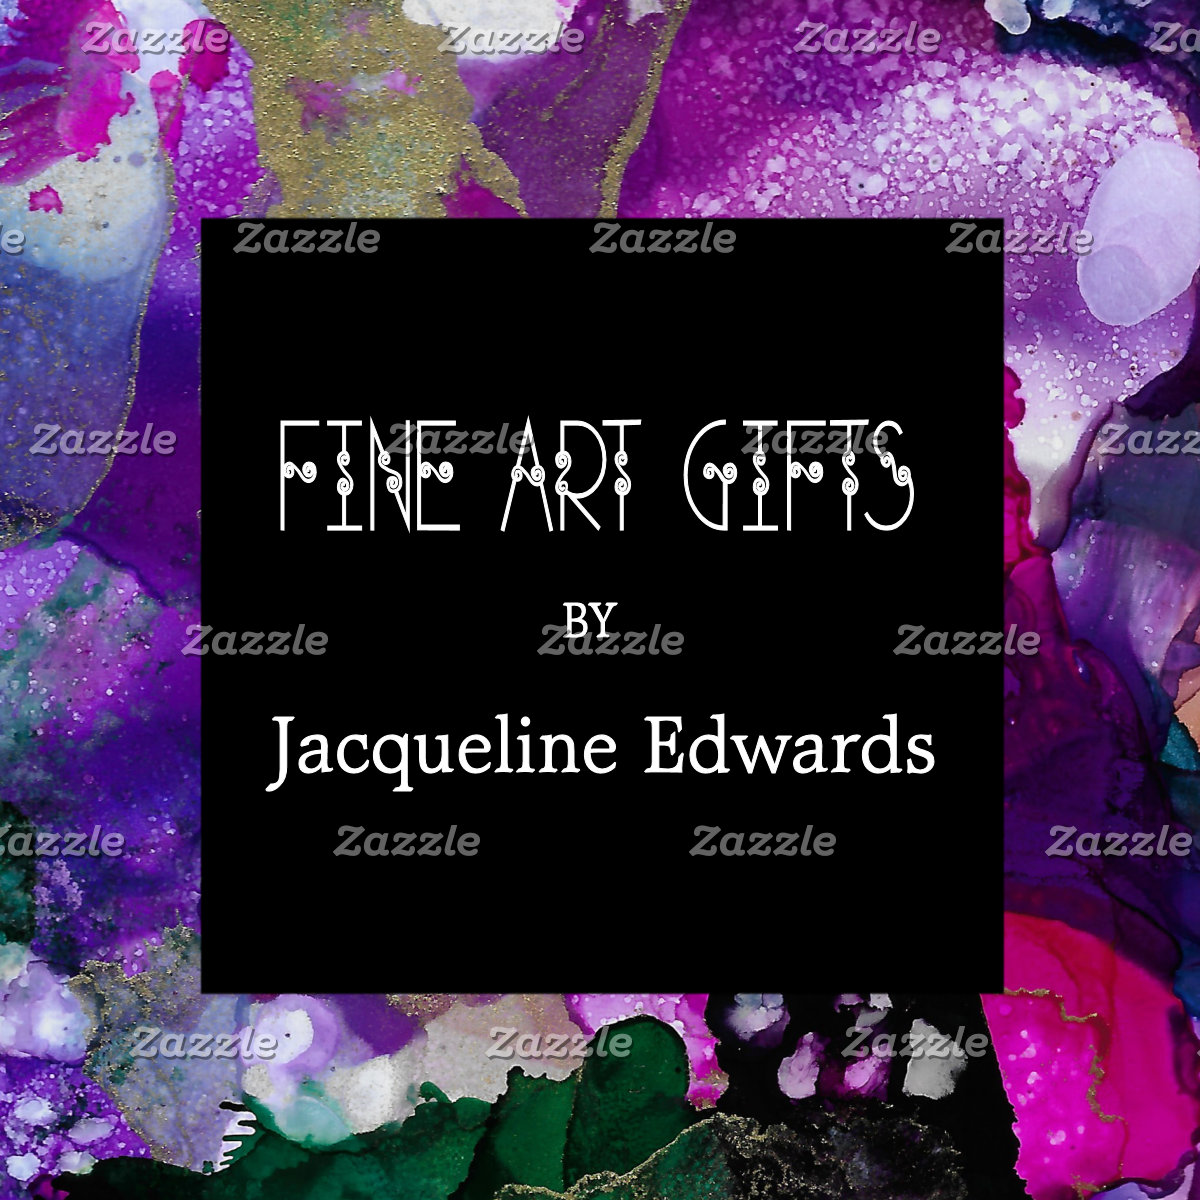 6. FINE ART by Jacqueline Edwards